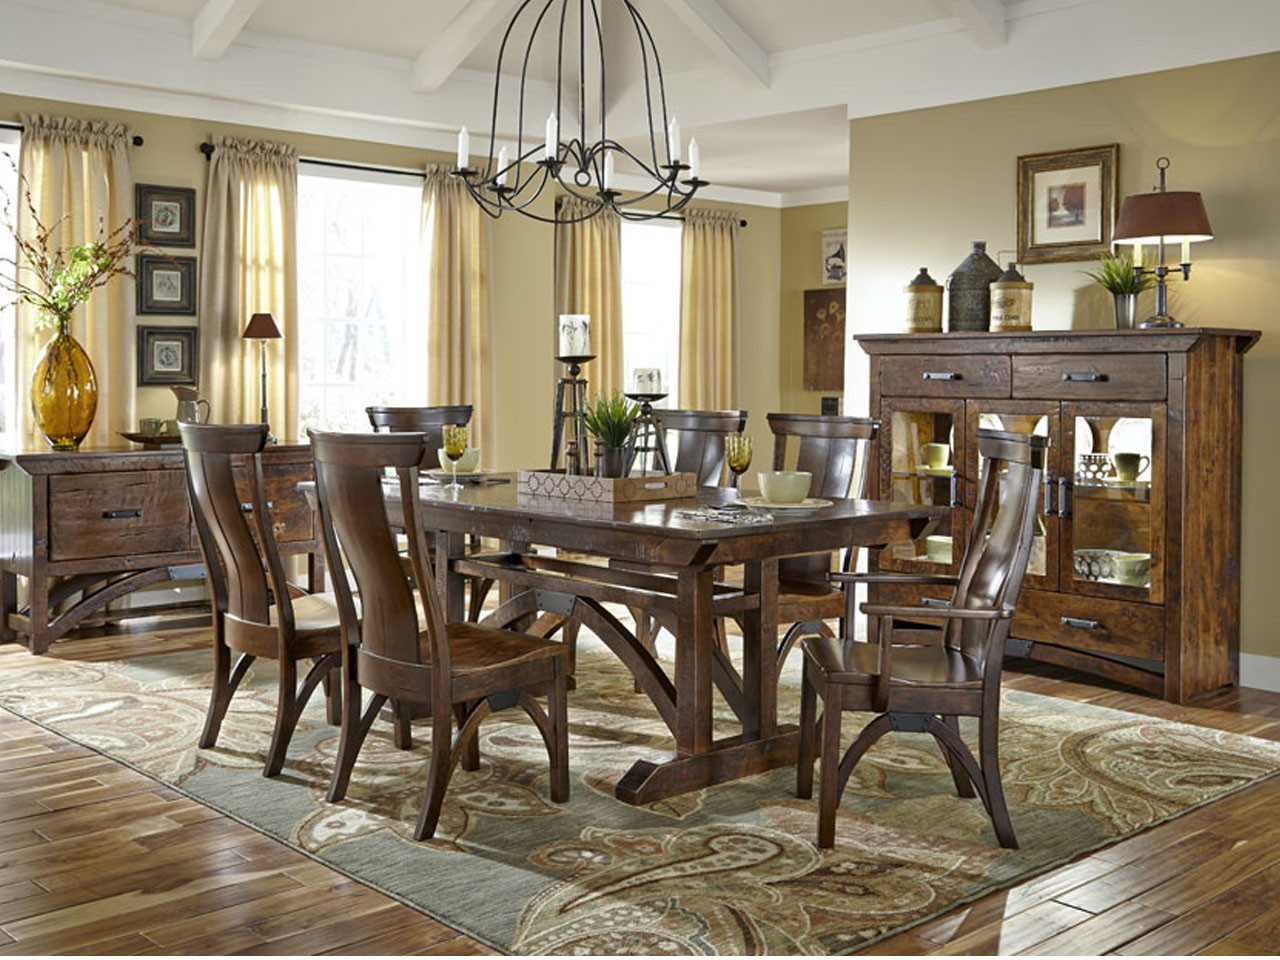 B O Railroad Trestle Table By Simply Amish